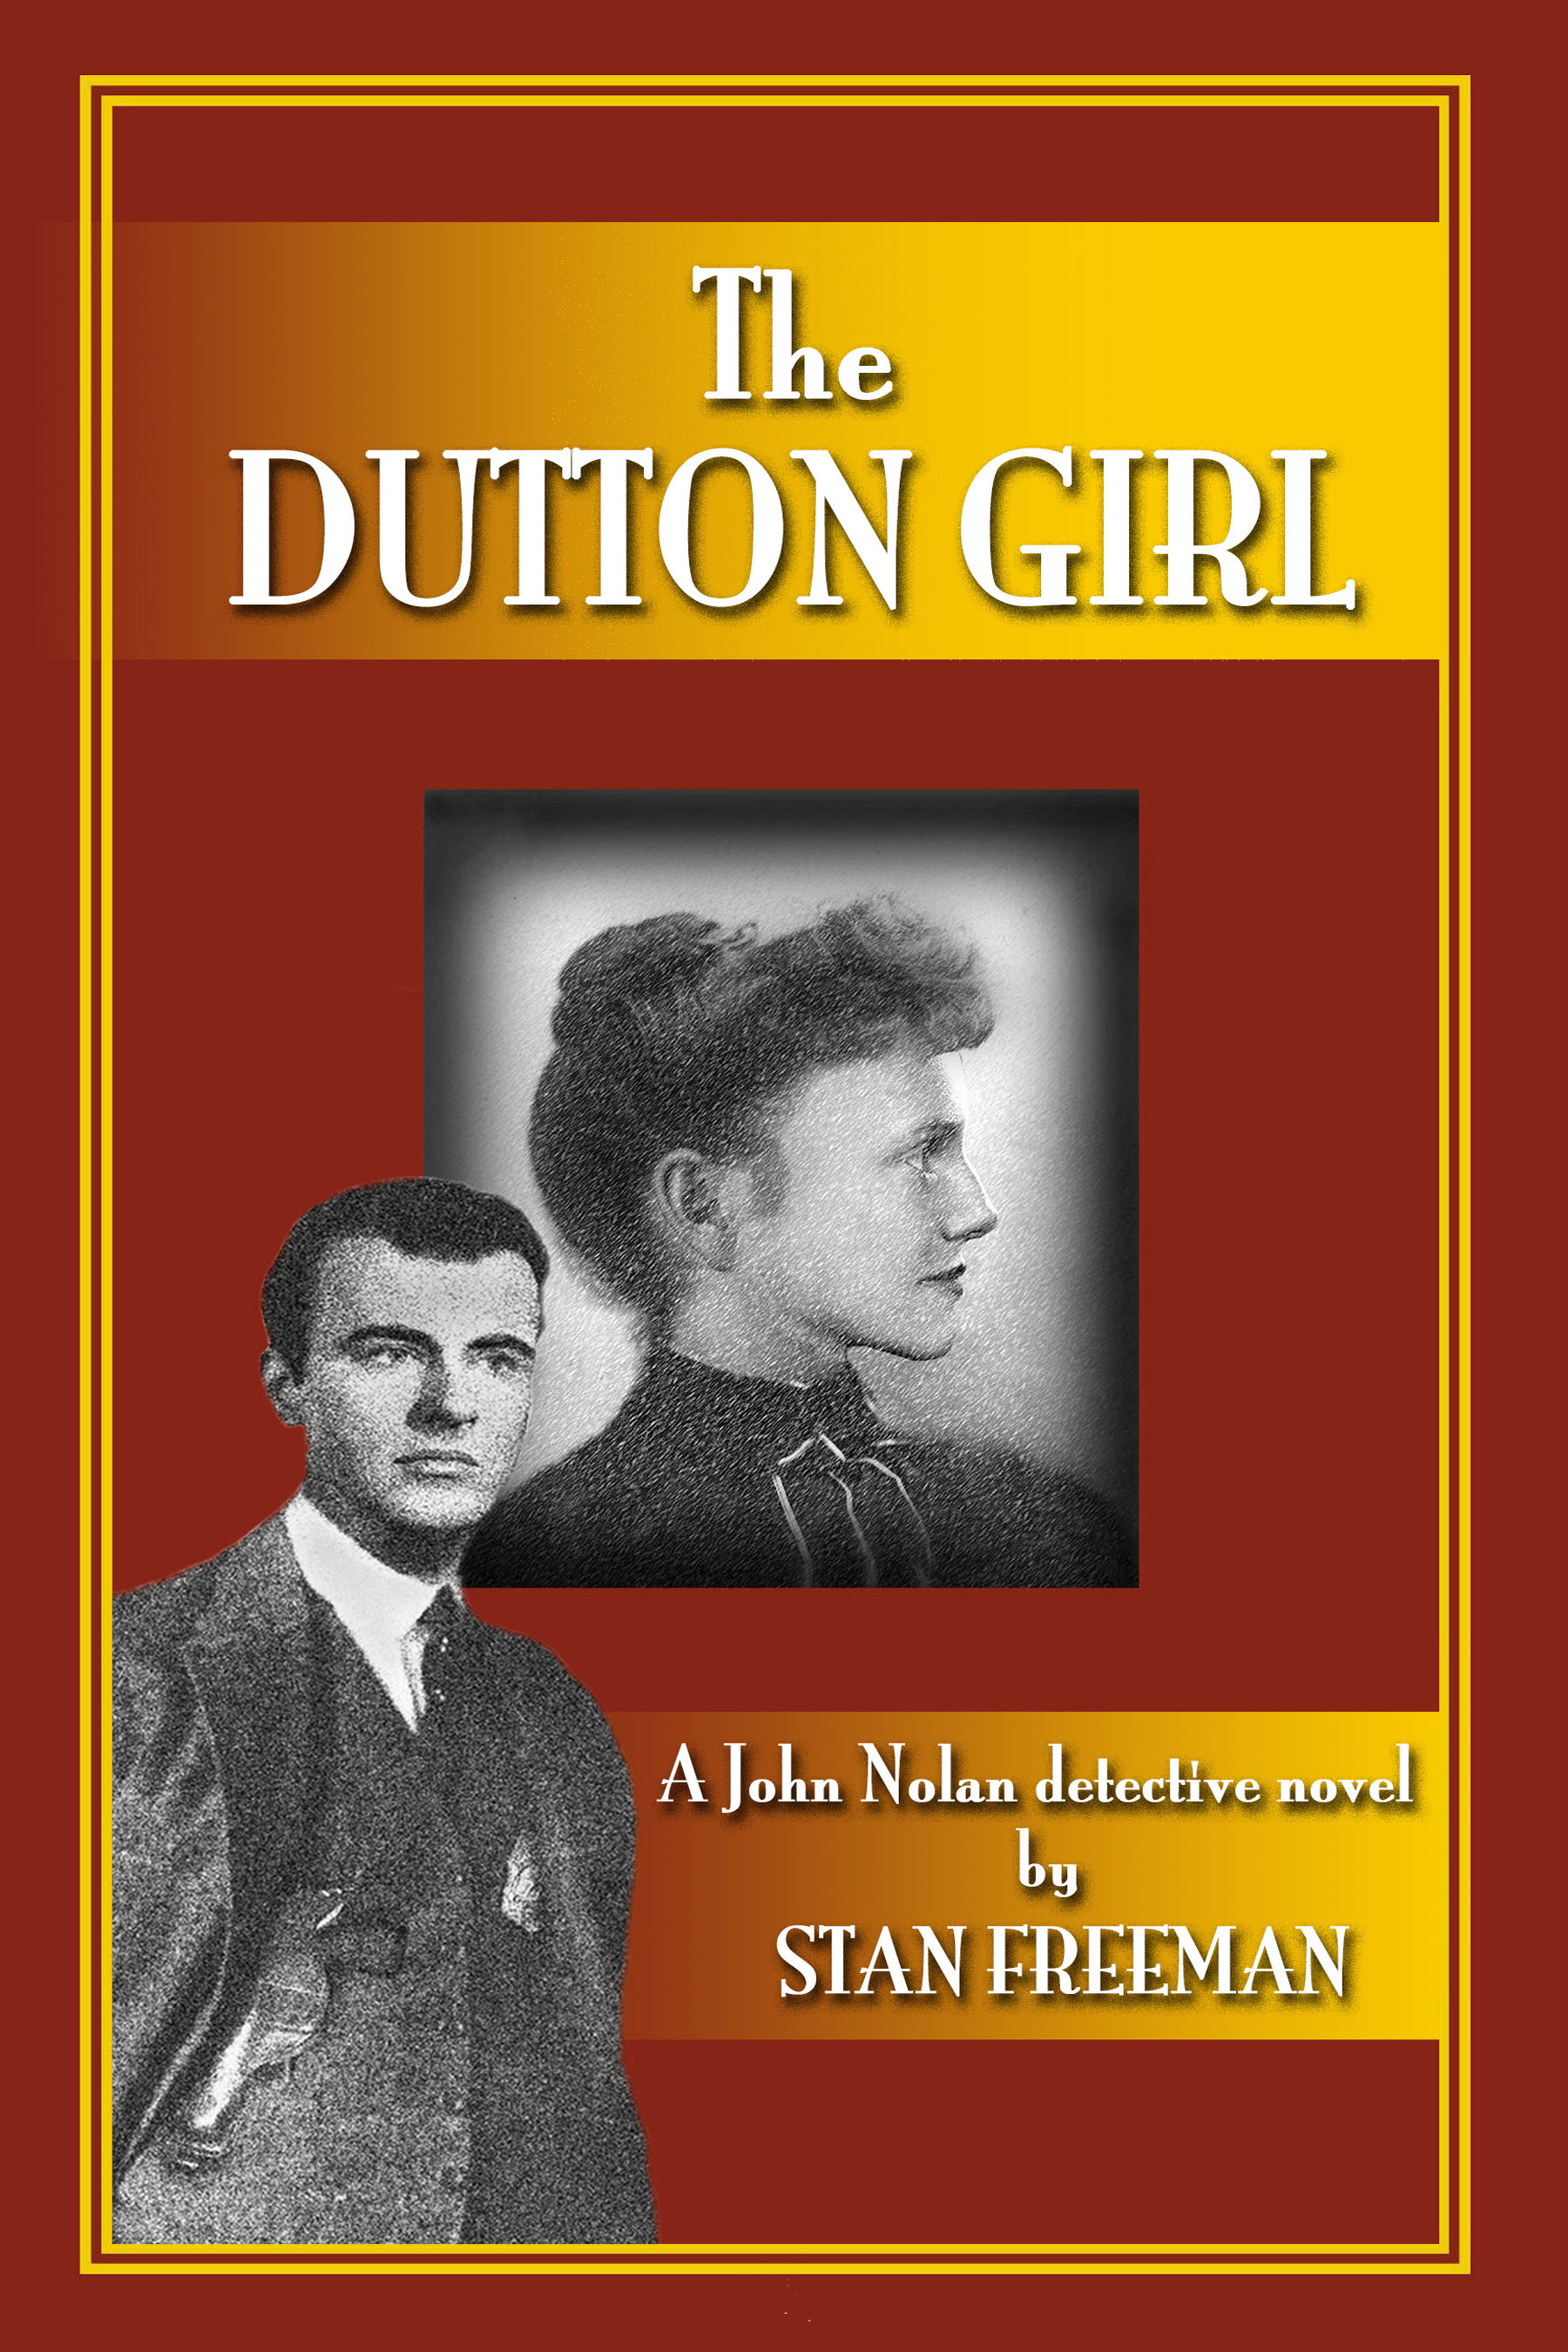 The Dutton Girl